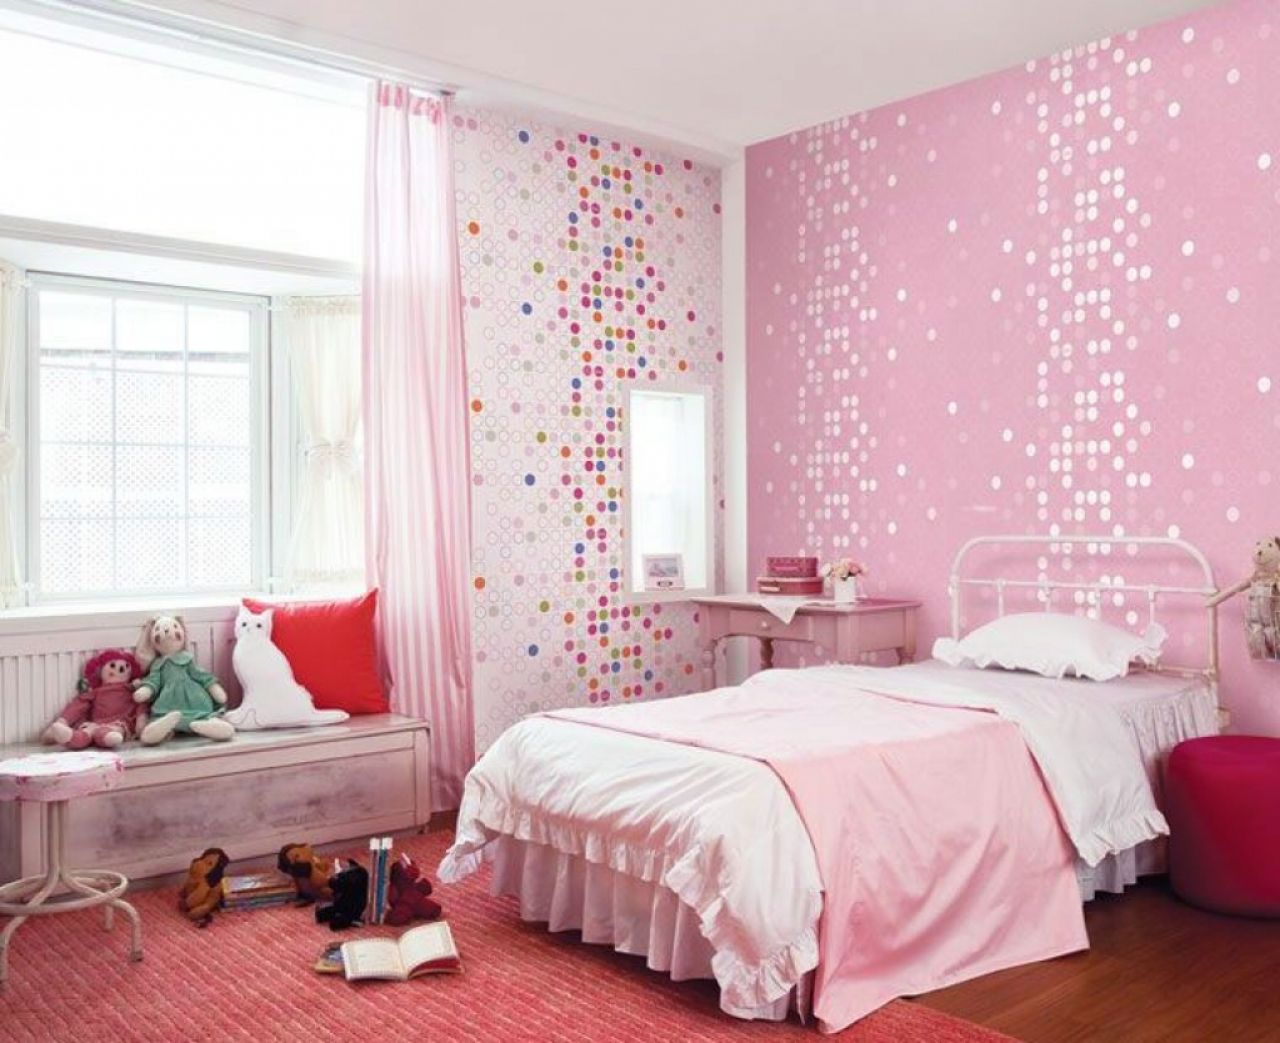 wallpaper for girls room Room Funny Pink Dotty Wallpaper Girls Bedroom Home Idea | voolis  wallpaper for girls room